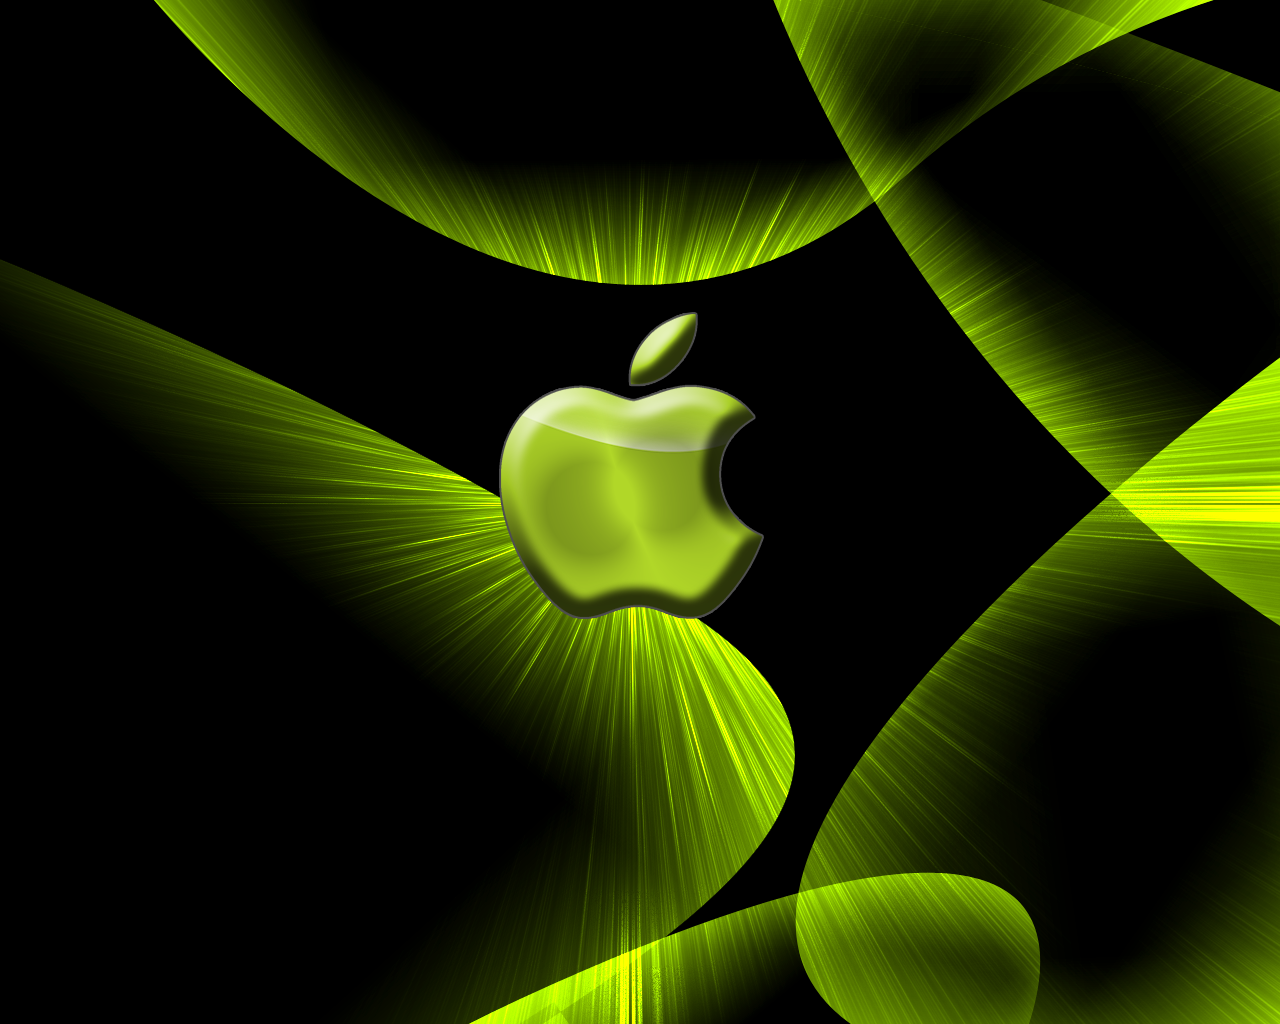 animated desktop backgrounds, 3d animated desktop backgrounds,animated